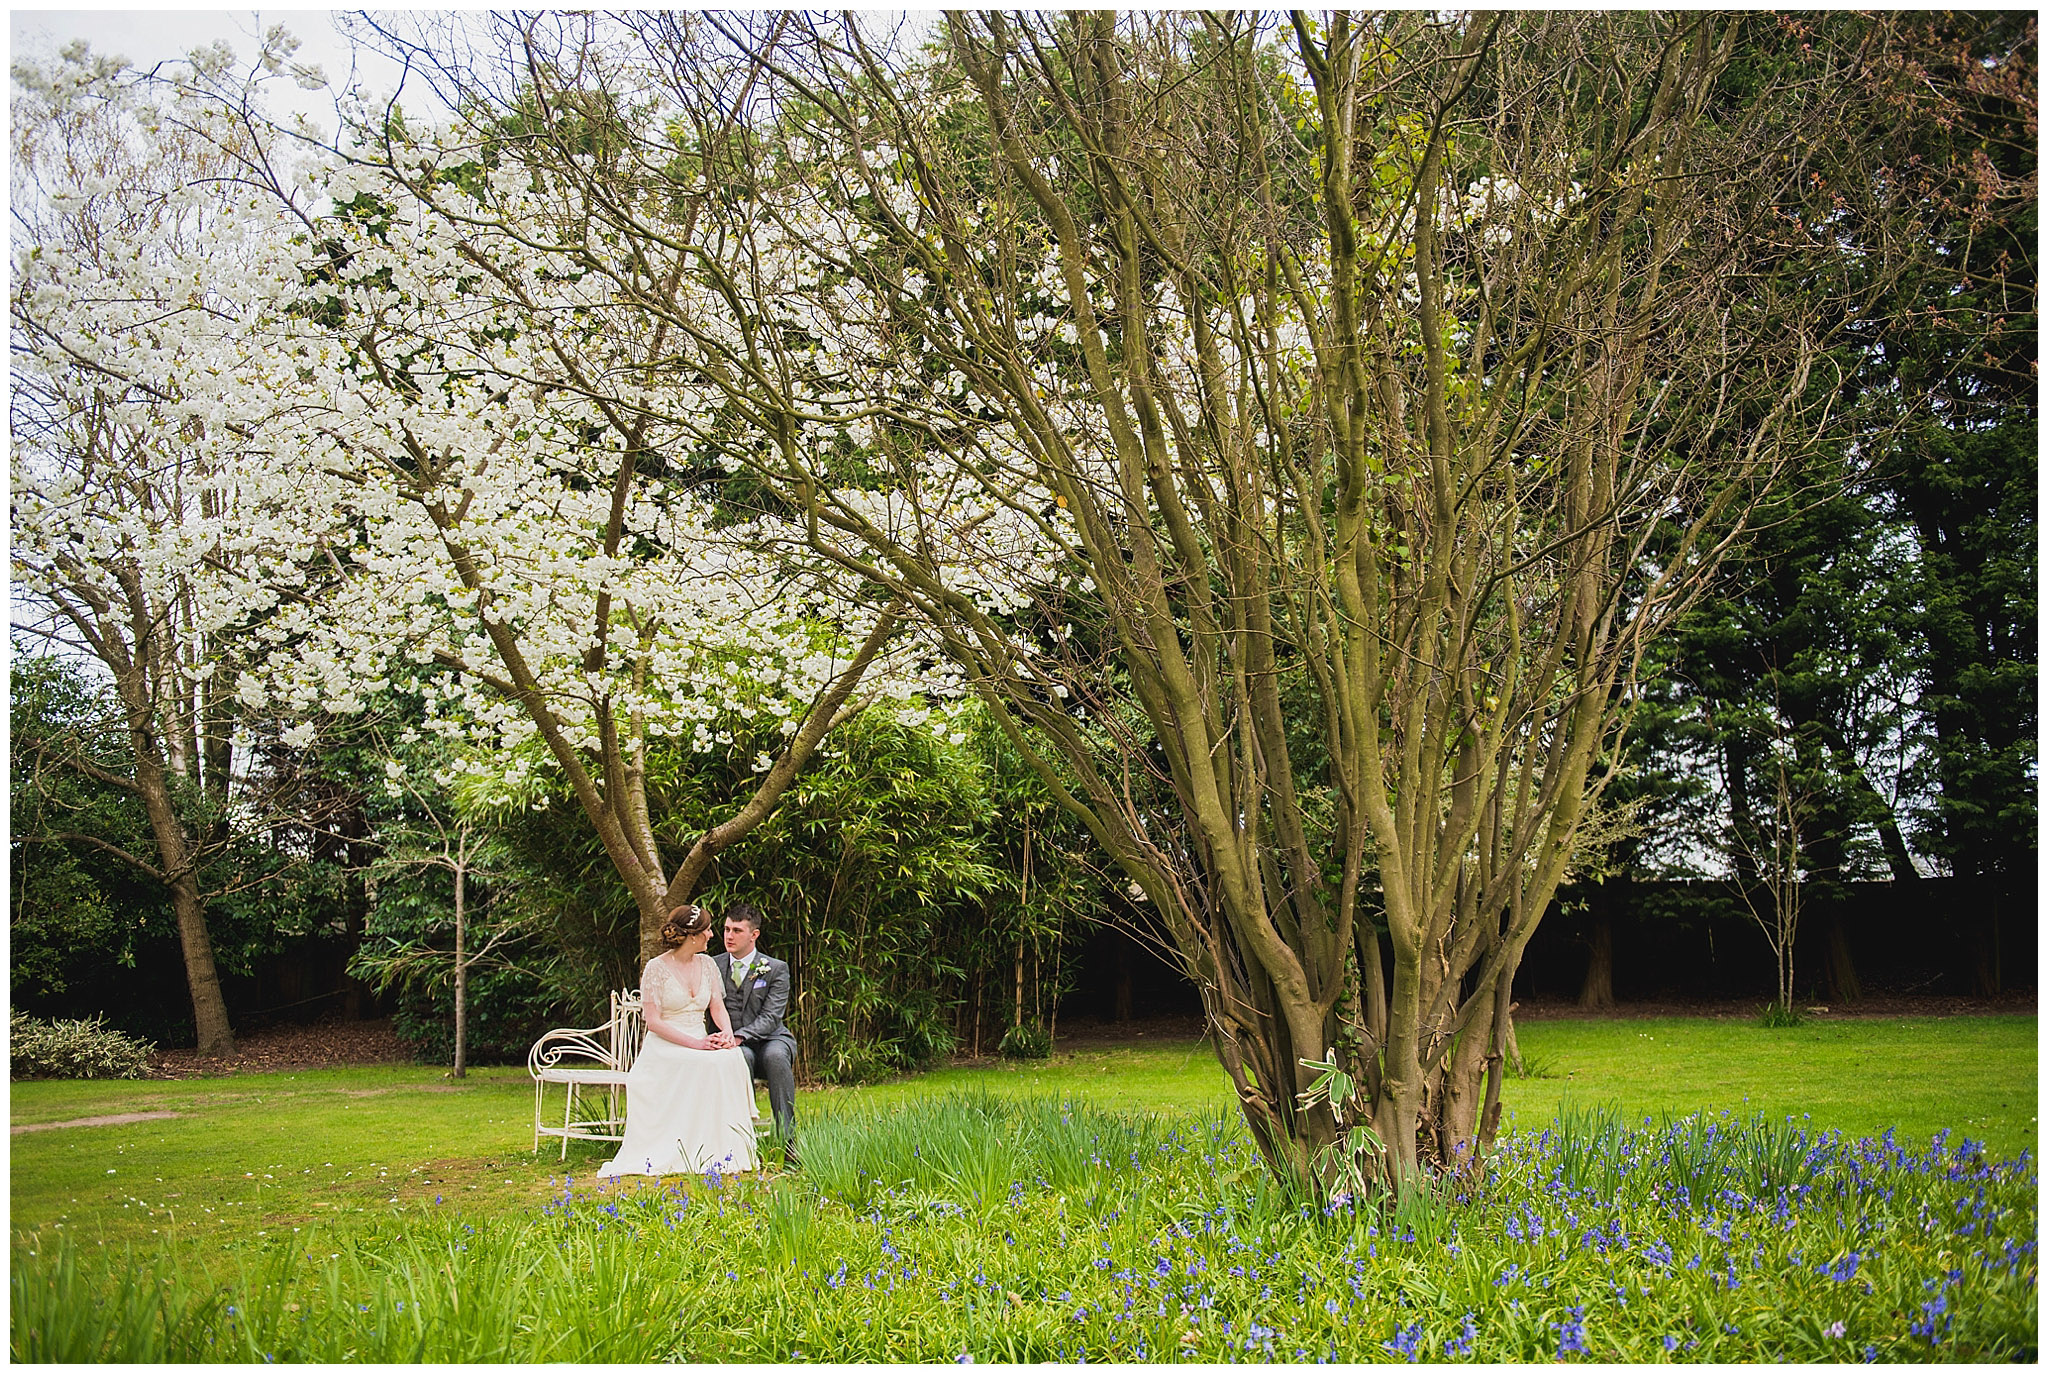 Sarah-&-Dan-The-Old-Vicarage-Wedding-Venue-Dorset-Photographer-37